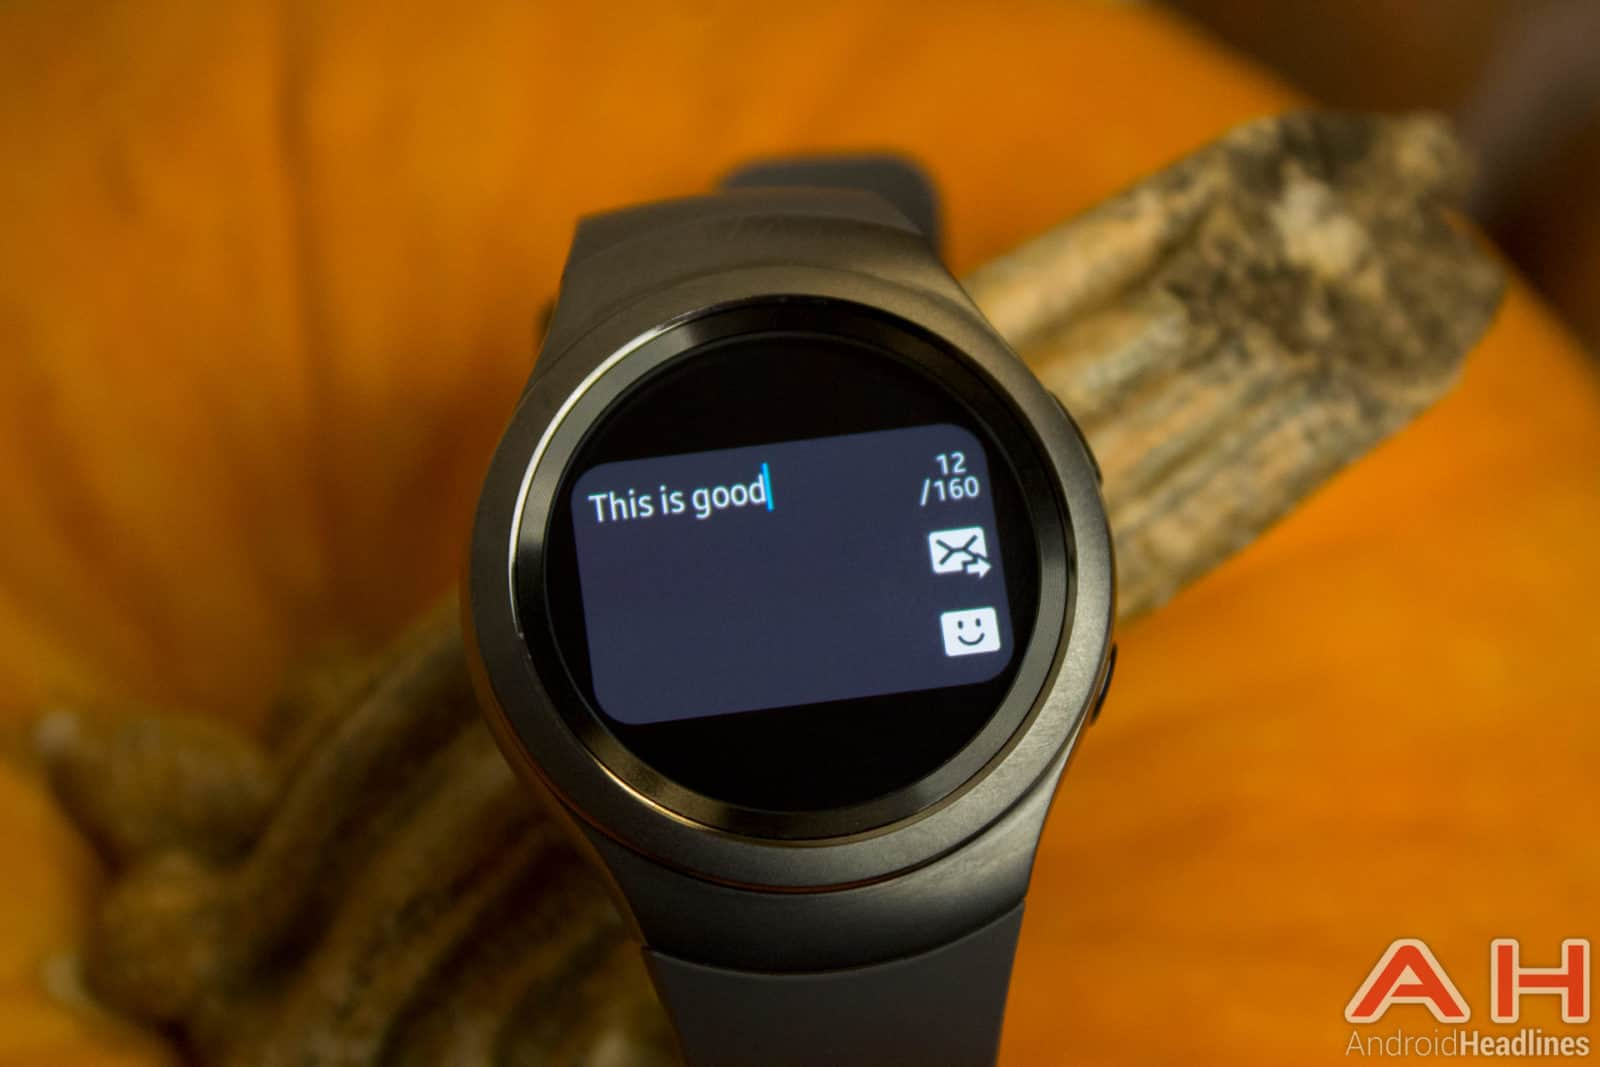 Samsung-Gear-S2-AH-message-9